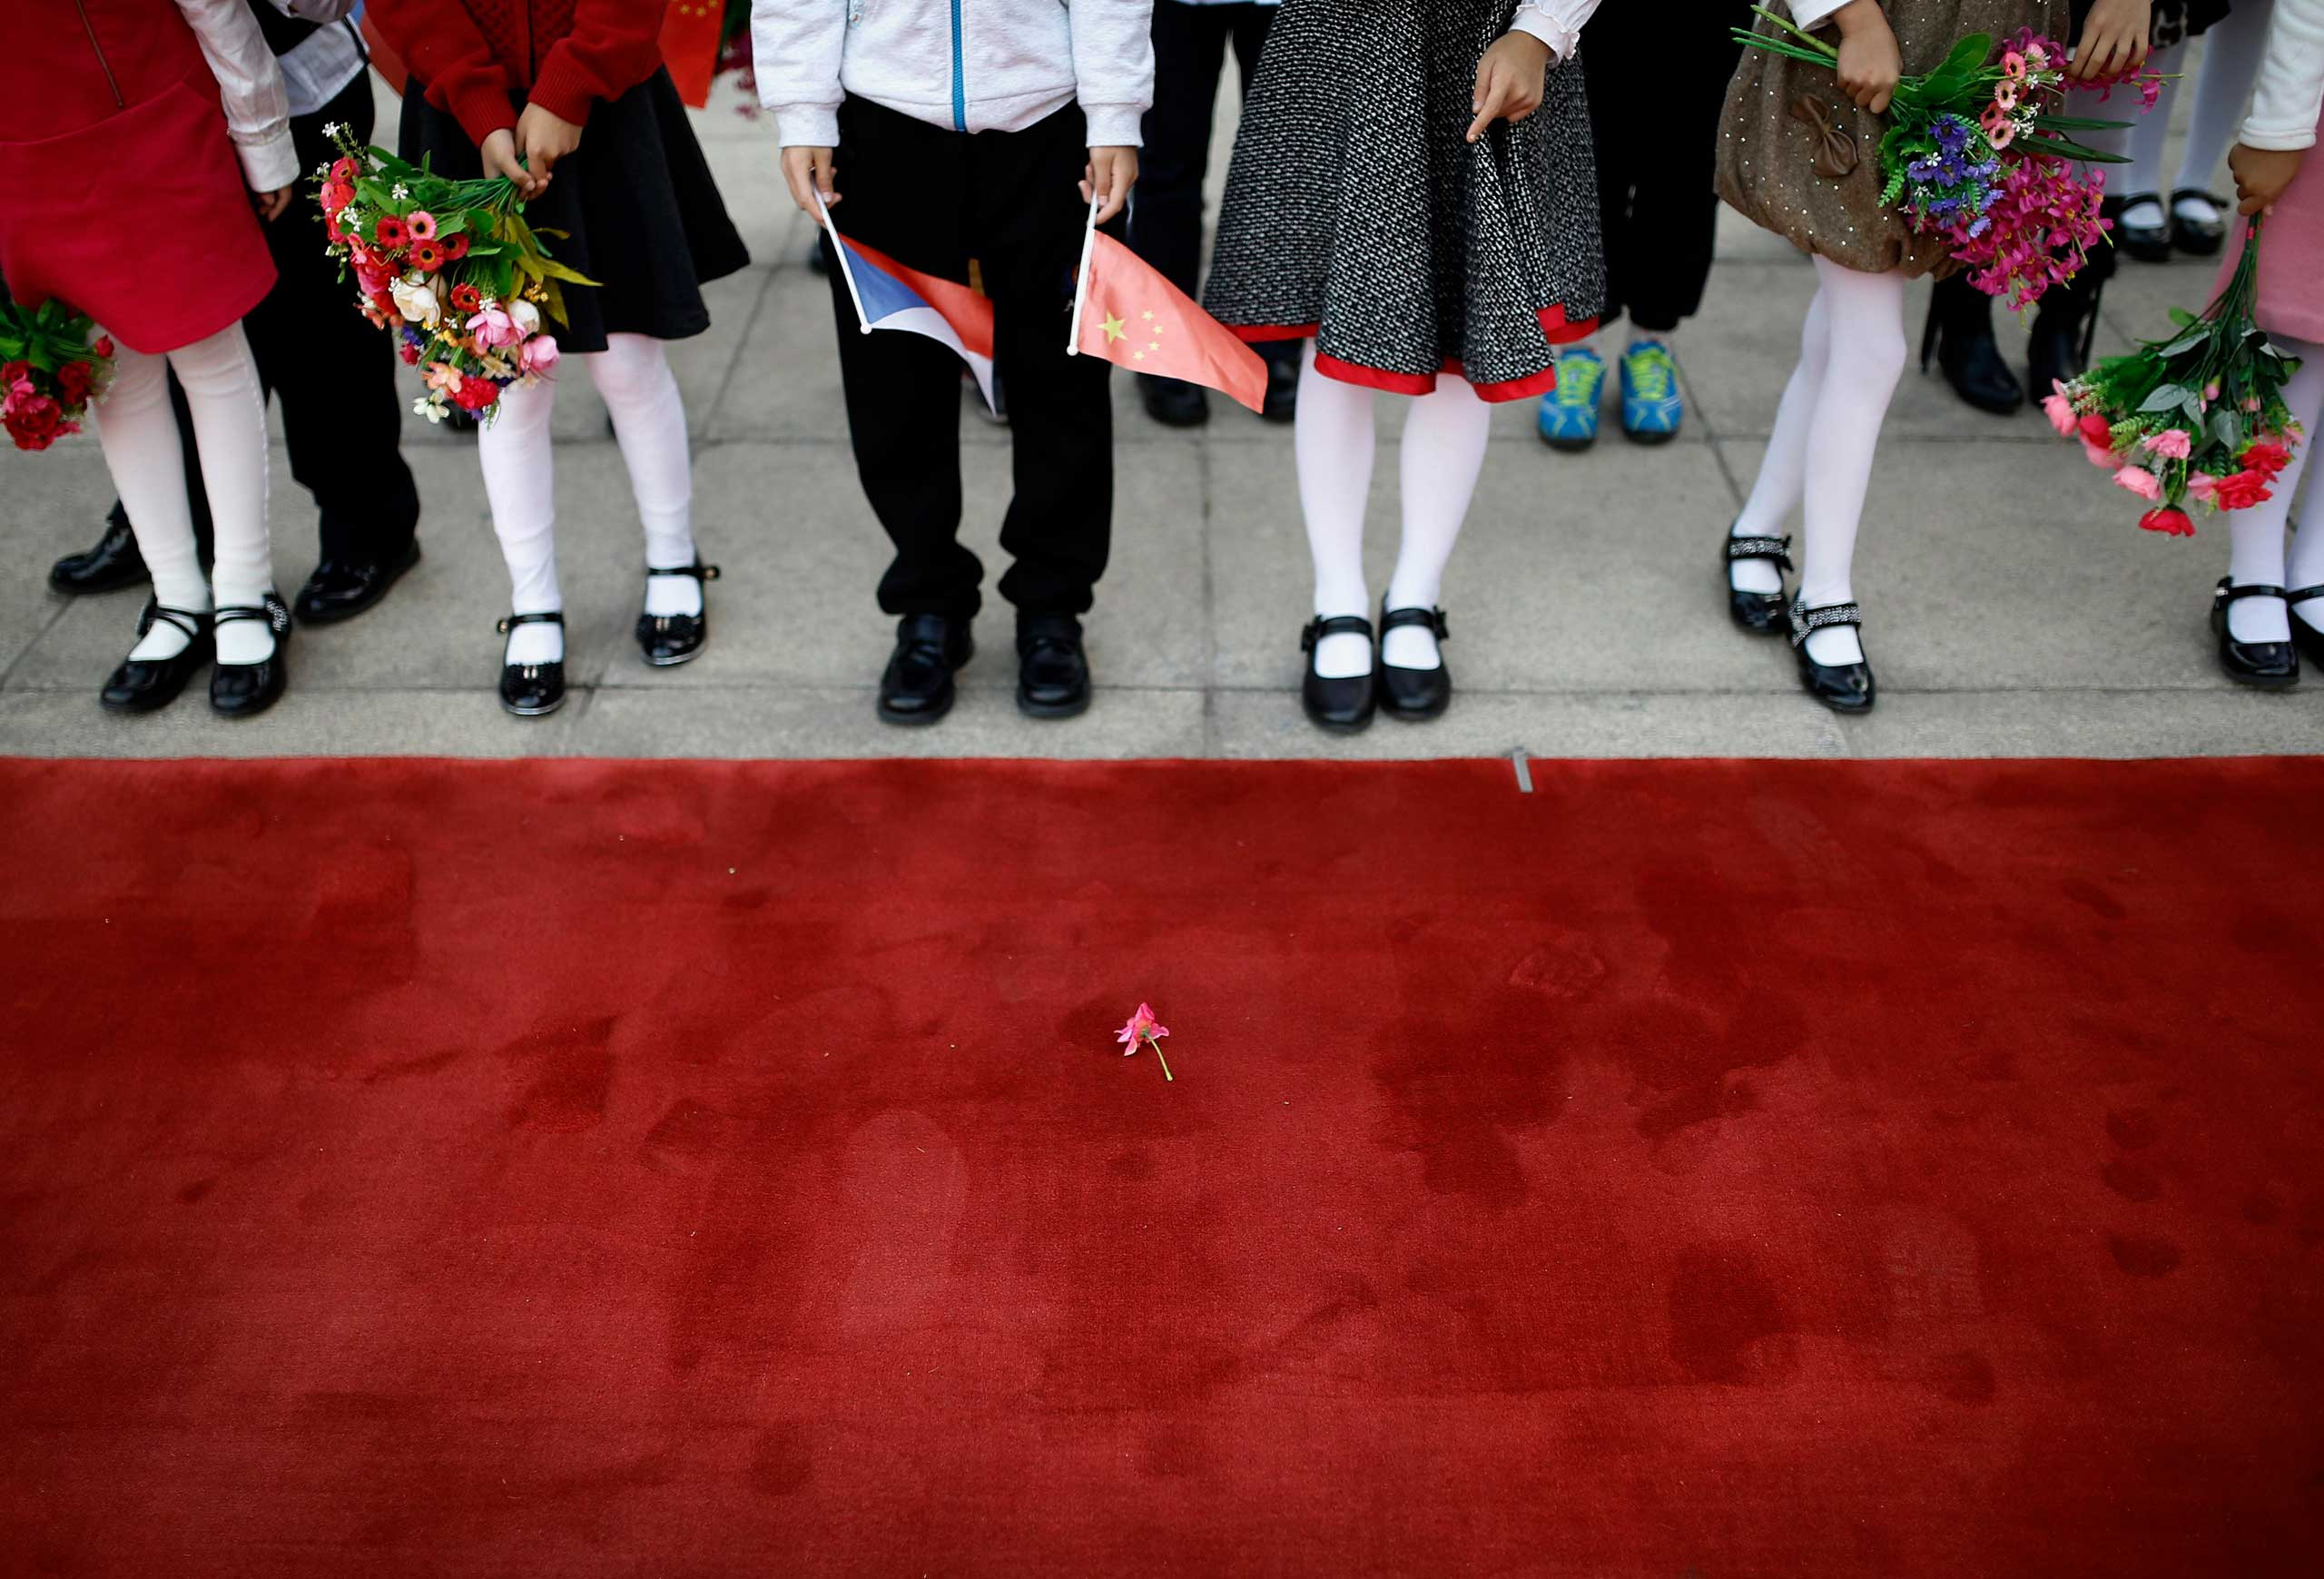 Oct. 27, 2014. A flower from bouquet held by children is seen on the red carpet before the welcome ceremony for visiting Czech Republic's President Milos Zeman outside the Great Hall of the People in Beijing.